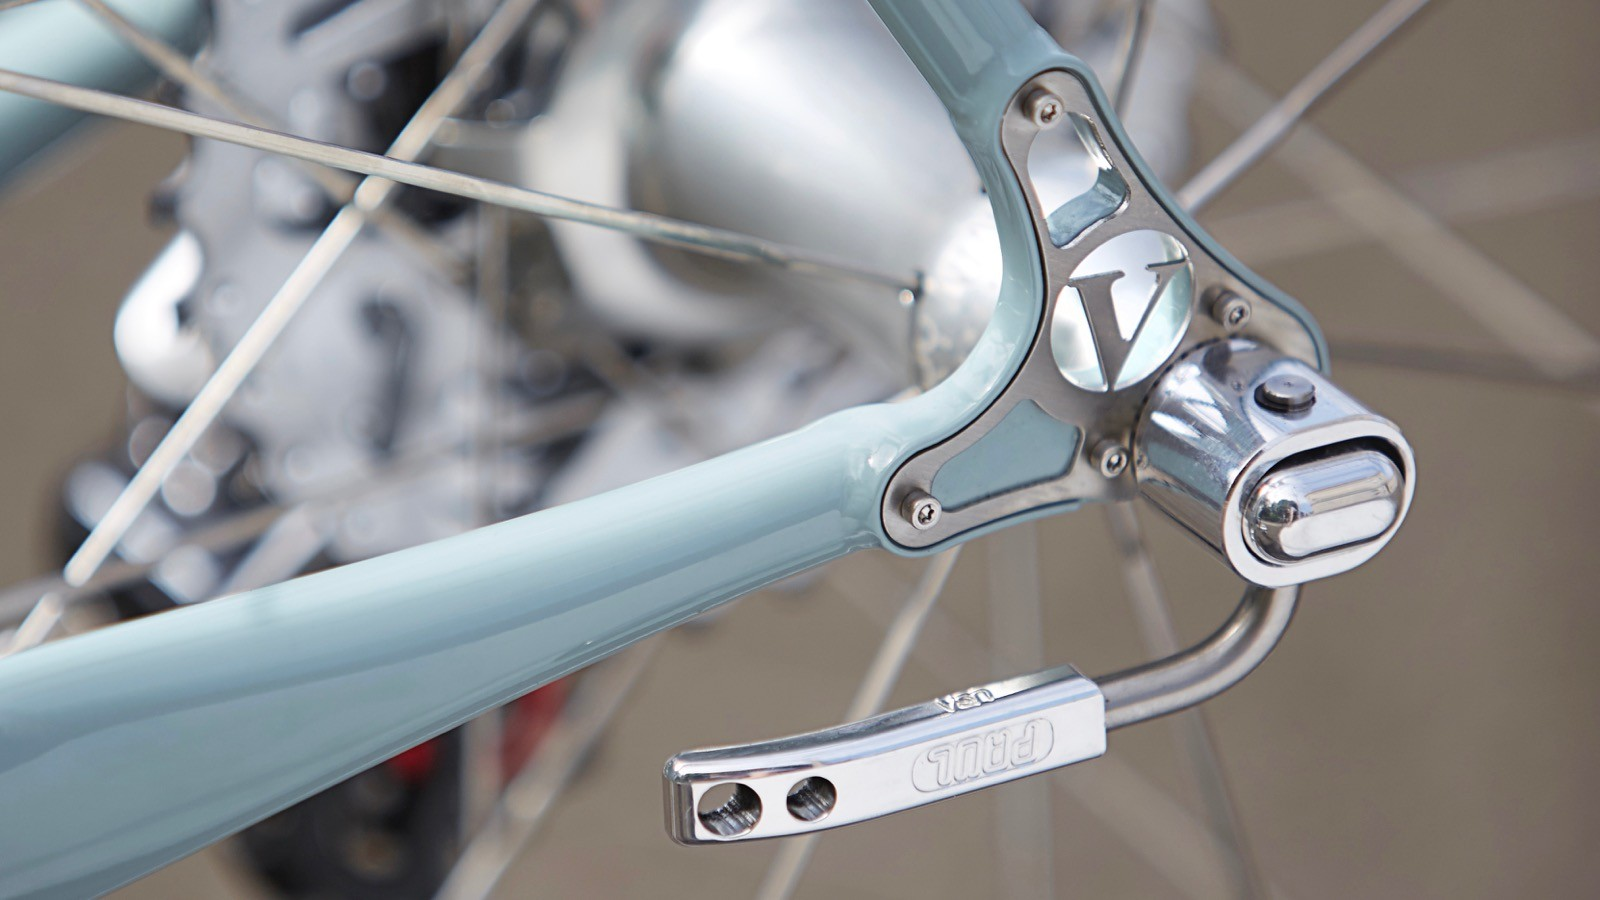 Vanilla Bicycles produces these ornate stainless steel reinforced dropouts